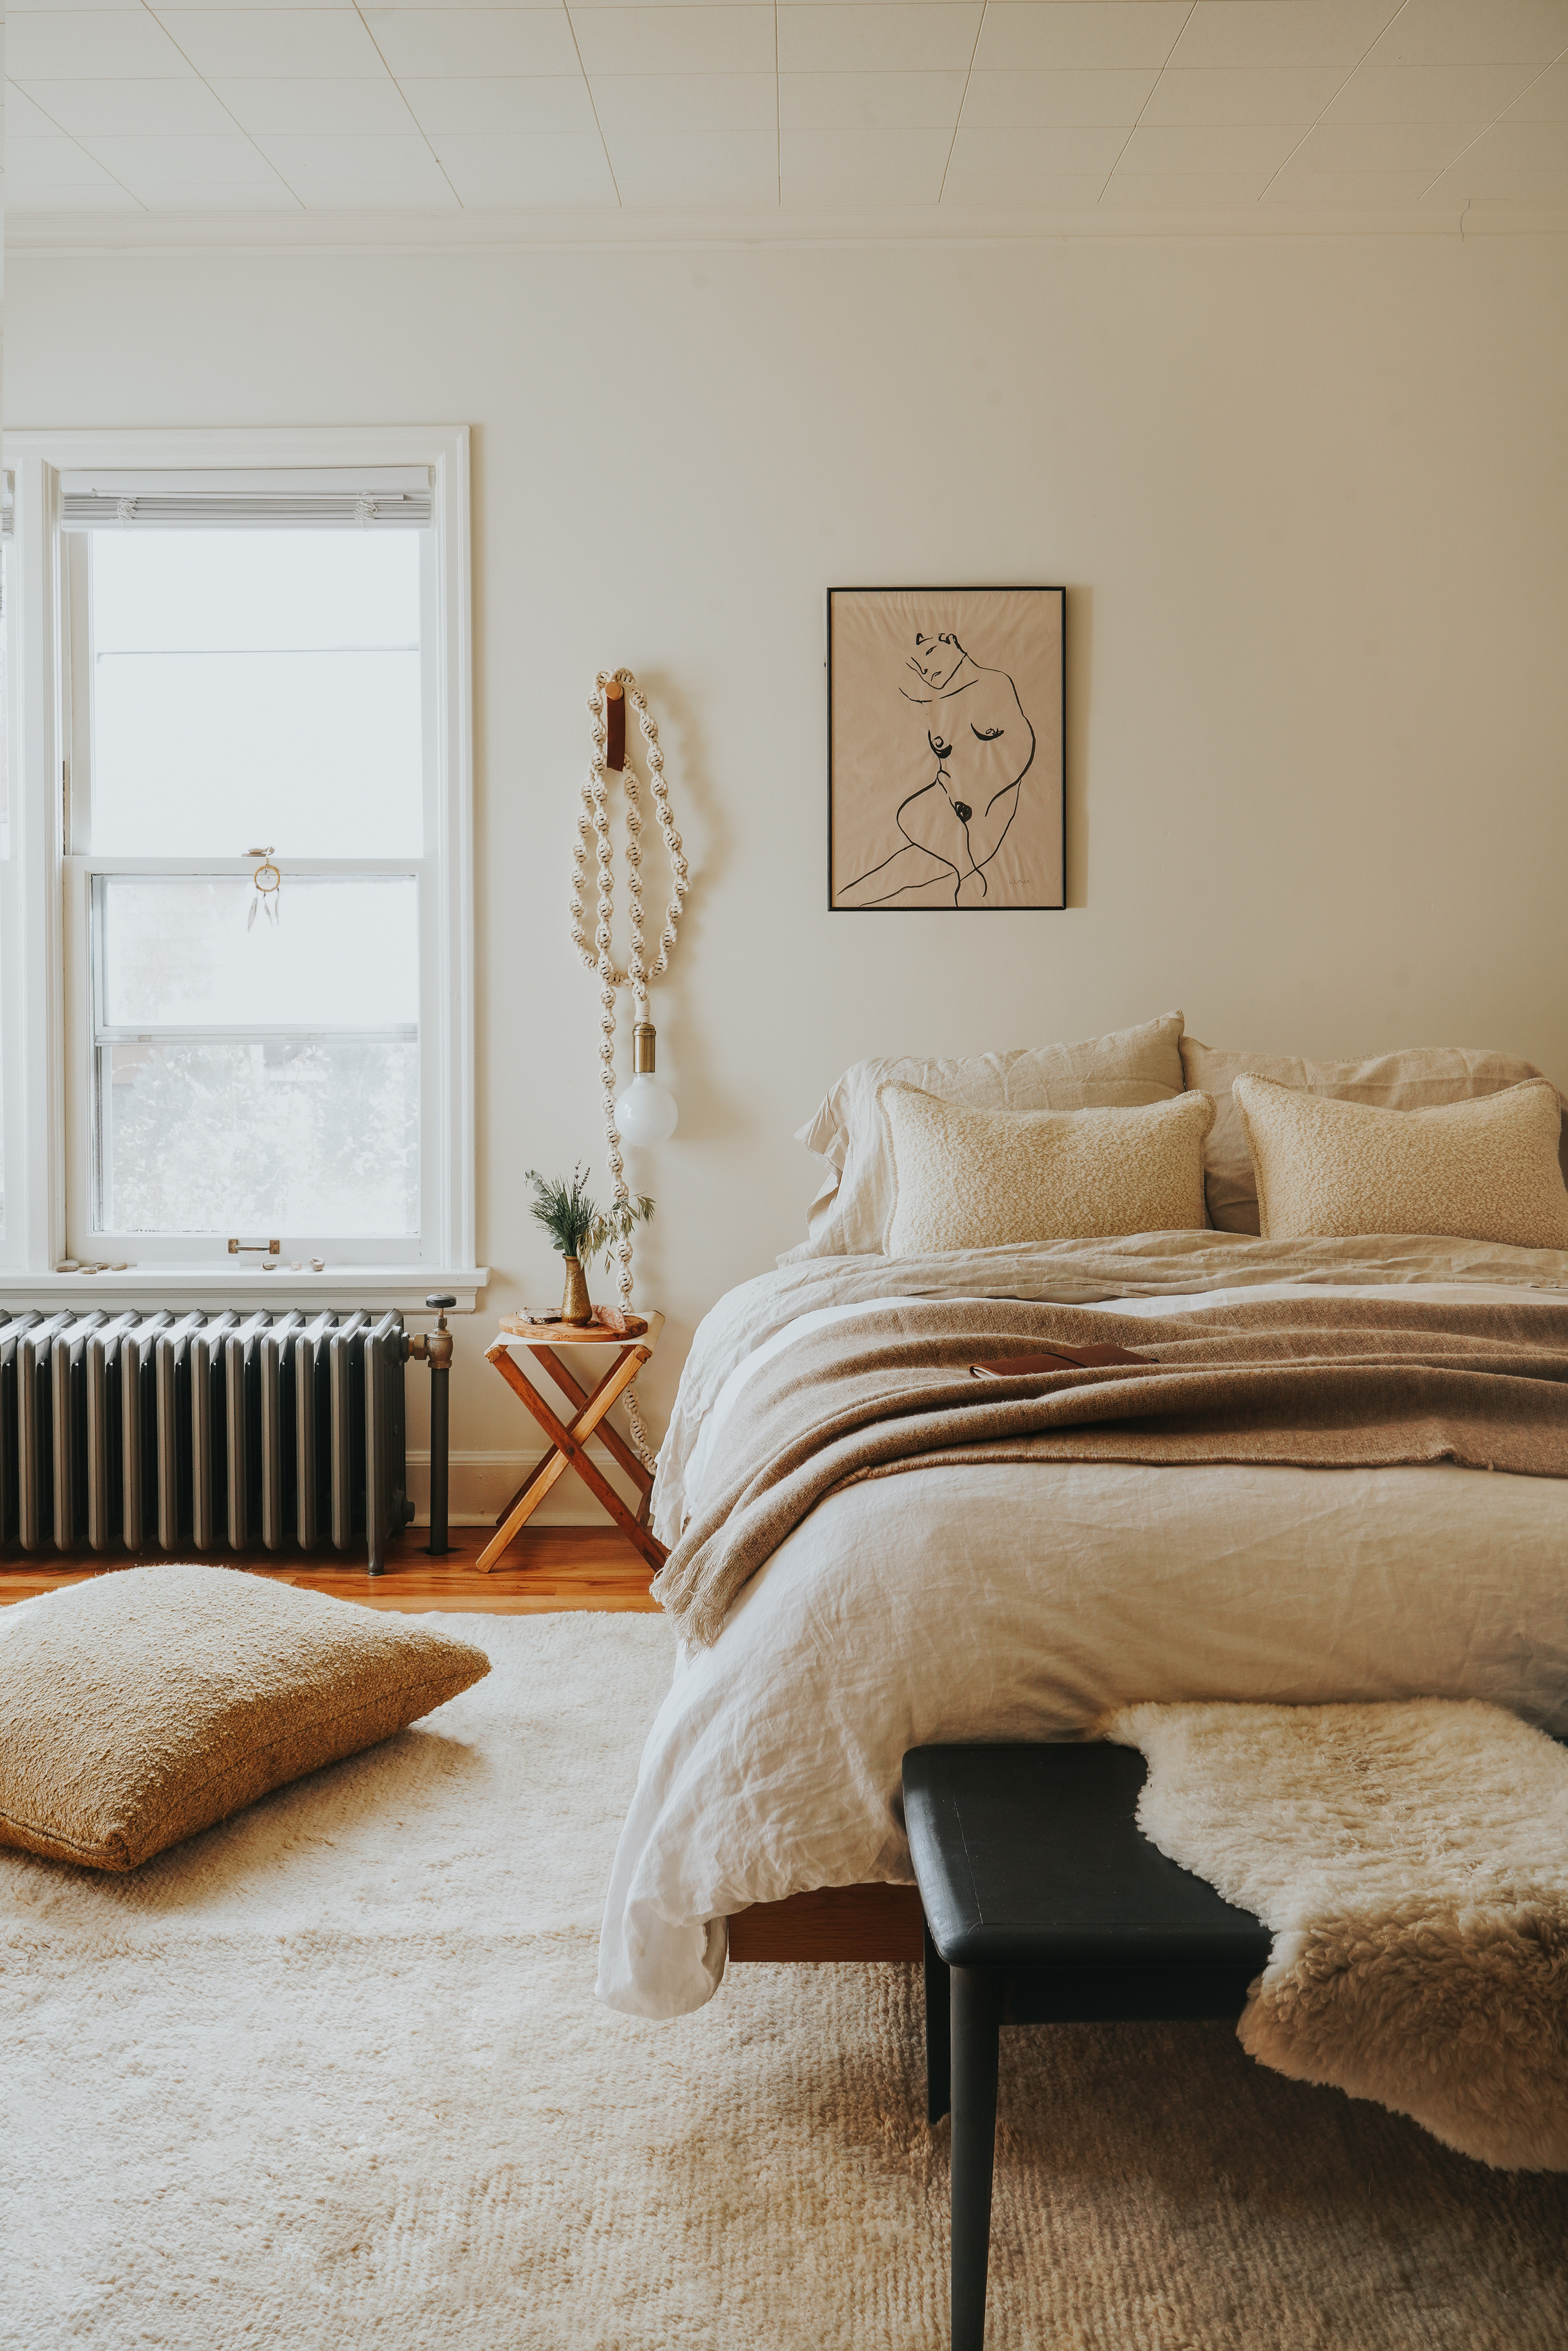 The neutral bedroom leans on rich texture and layers to bring dimension and warmth. Article Bed Frame; Coyuchi Sheets; West Elm Duvet Cover; Pottery Barn Sheepskin Pillow Covers; Windy Chien Rope Light; Elle Luna Artwork; Antique Camp Stool; Vintage Black Bench; Lulu & Georgia Rug; Lulu & Georgia Sheepskin Rug.